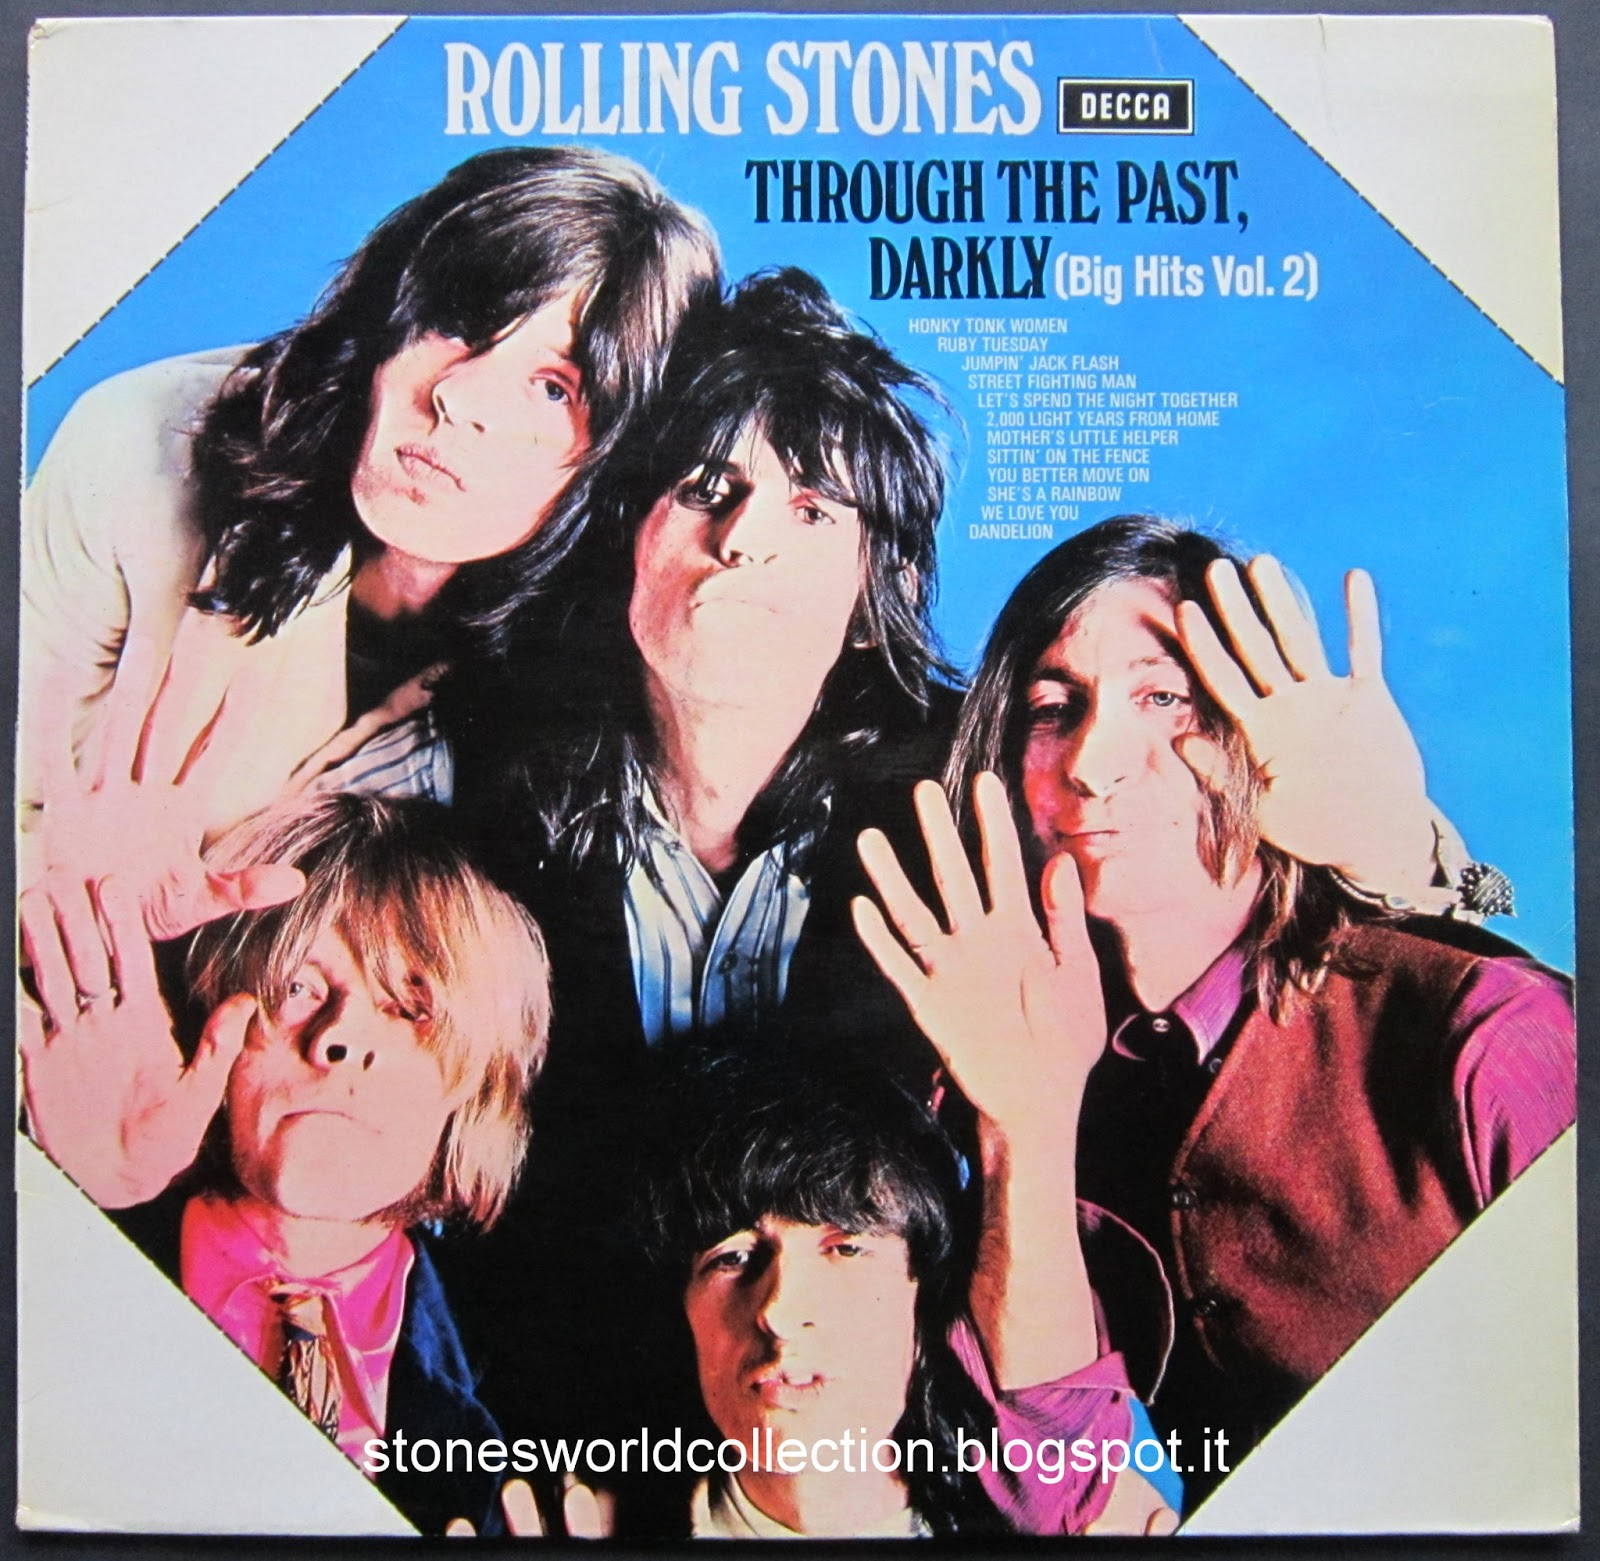 Stonesworldcollection through the past darkly do it yourself through the past darkly do it yourself version of the octagonal cover western germany decca red boxed label royal sound copies pressed for sale in usa solutioingenieria Gallery